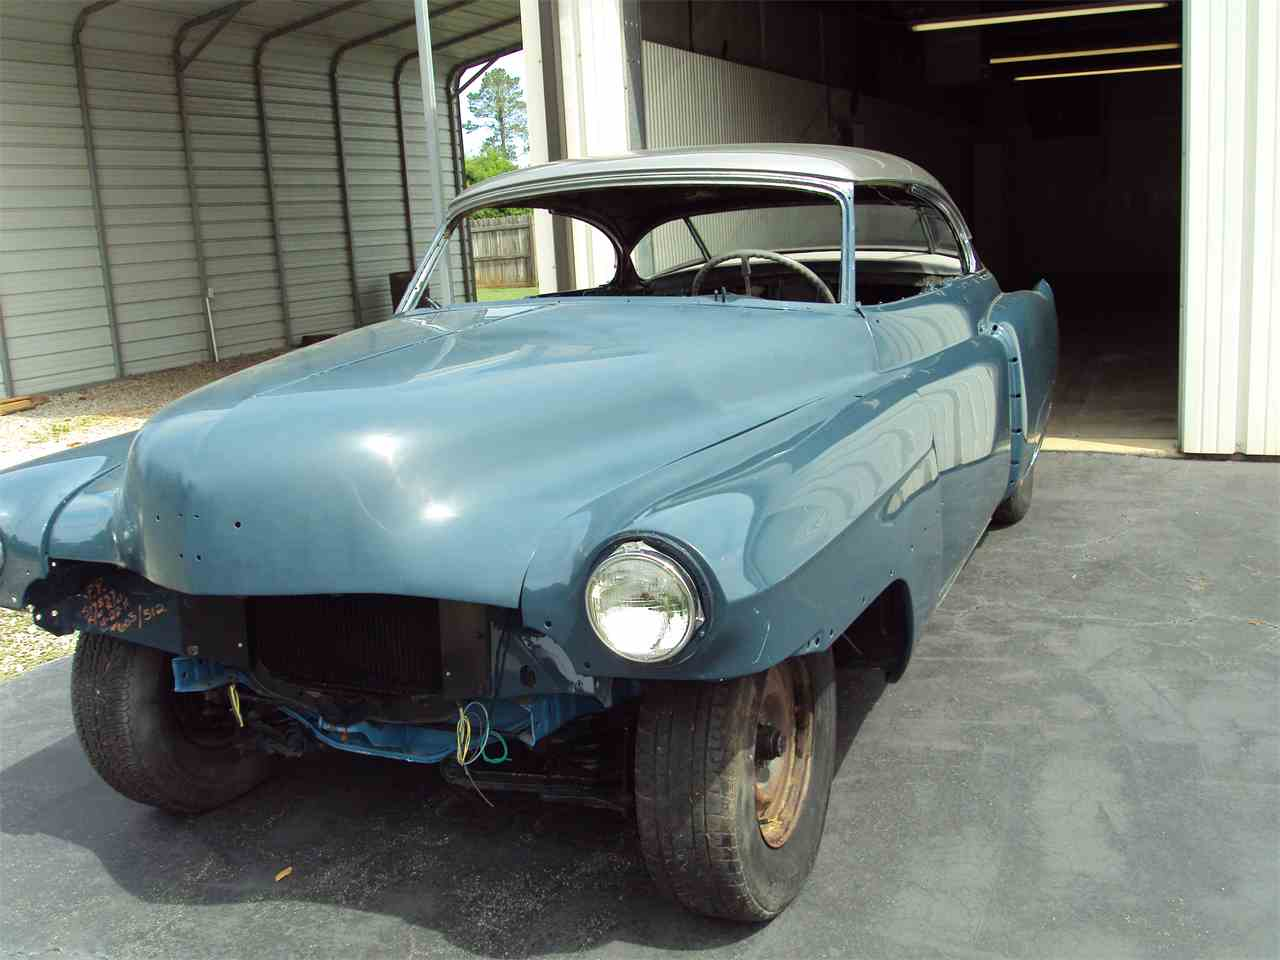 1951 Cadillac Coupe Deville Hot Rod Rat For Kids